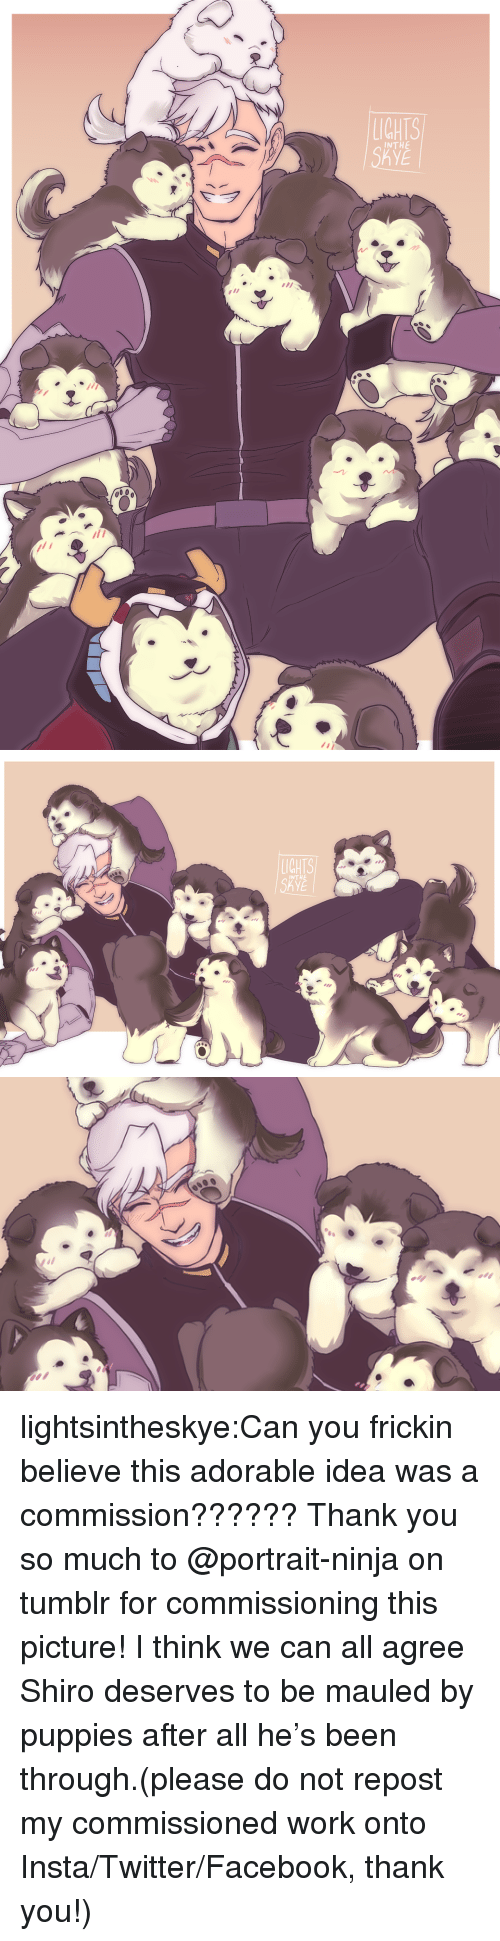 Facebook, Puppies, and Target: IGHTS  INTHE  KYE   IGHTS  INTHE  KYE lightsintheskye:Can you frickin believe this adorable idea was a commission?????? Thank you so much to @portrait-ninja on tumblr for commissioning this picture!I think we can all agree Shiro deserves to be mauled by puppies after all he's been through.(please do not repost my commissioned work onto Insta/Twitter/Facebook, thank you!)